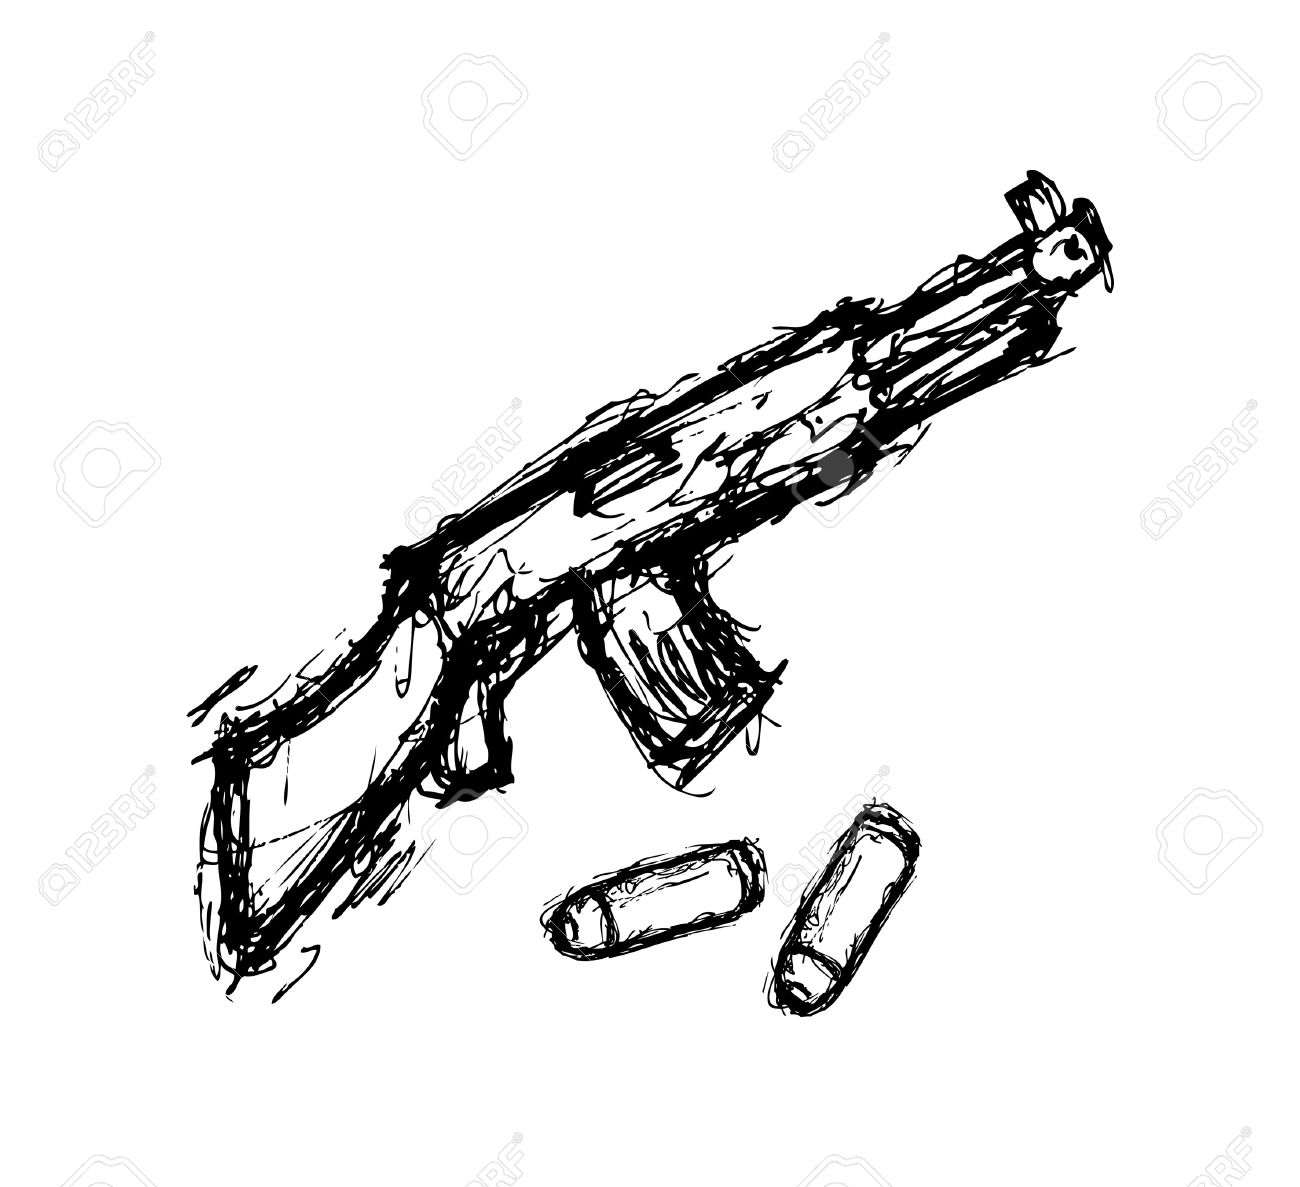 1300x1187 Hand Drawn Gun Royalty Free Cliparts, Vectors, And Stock